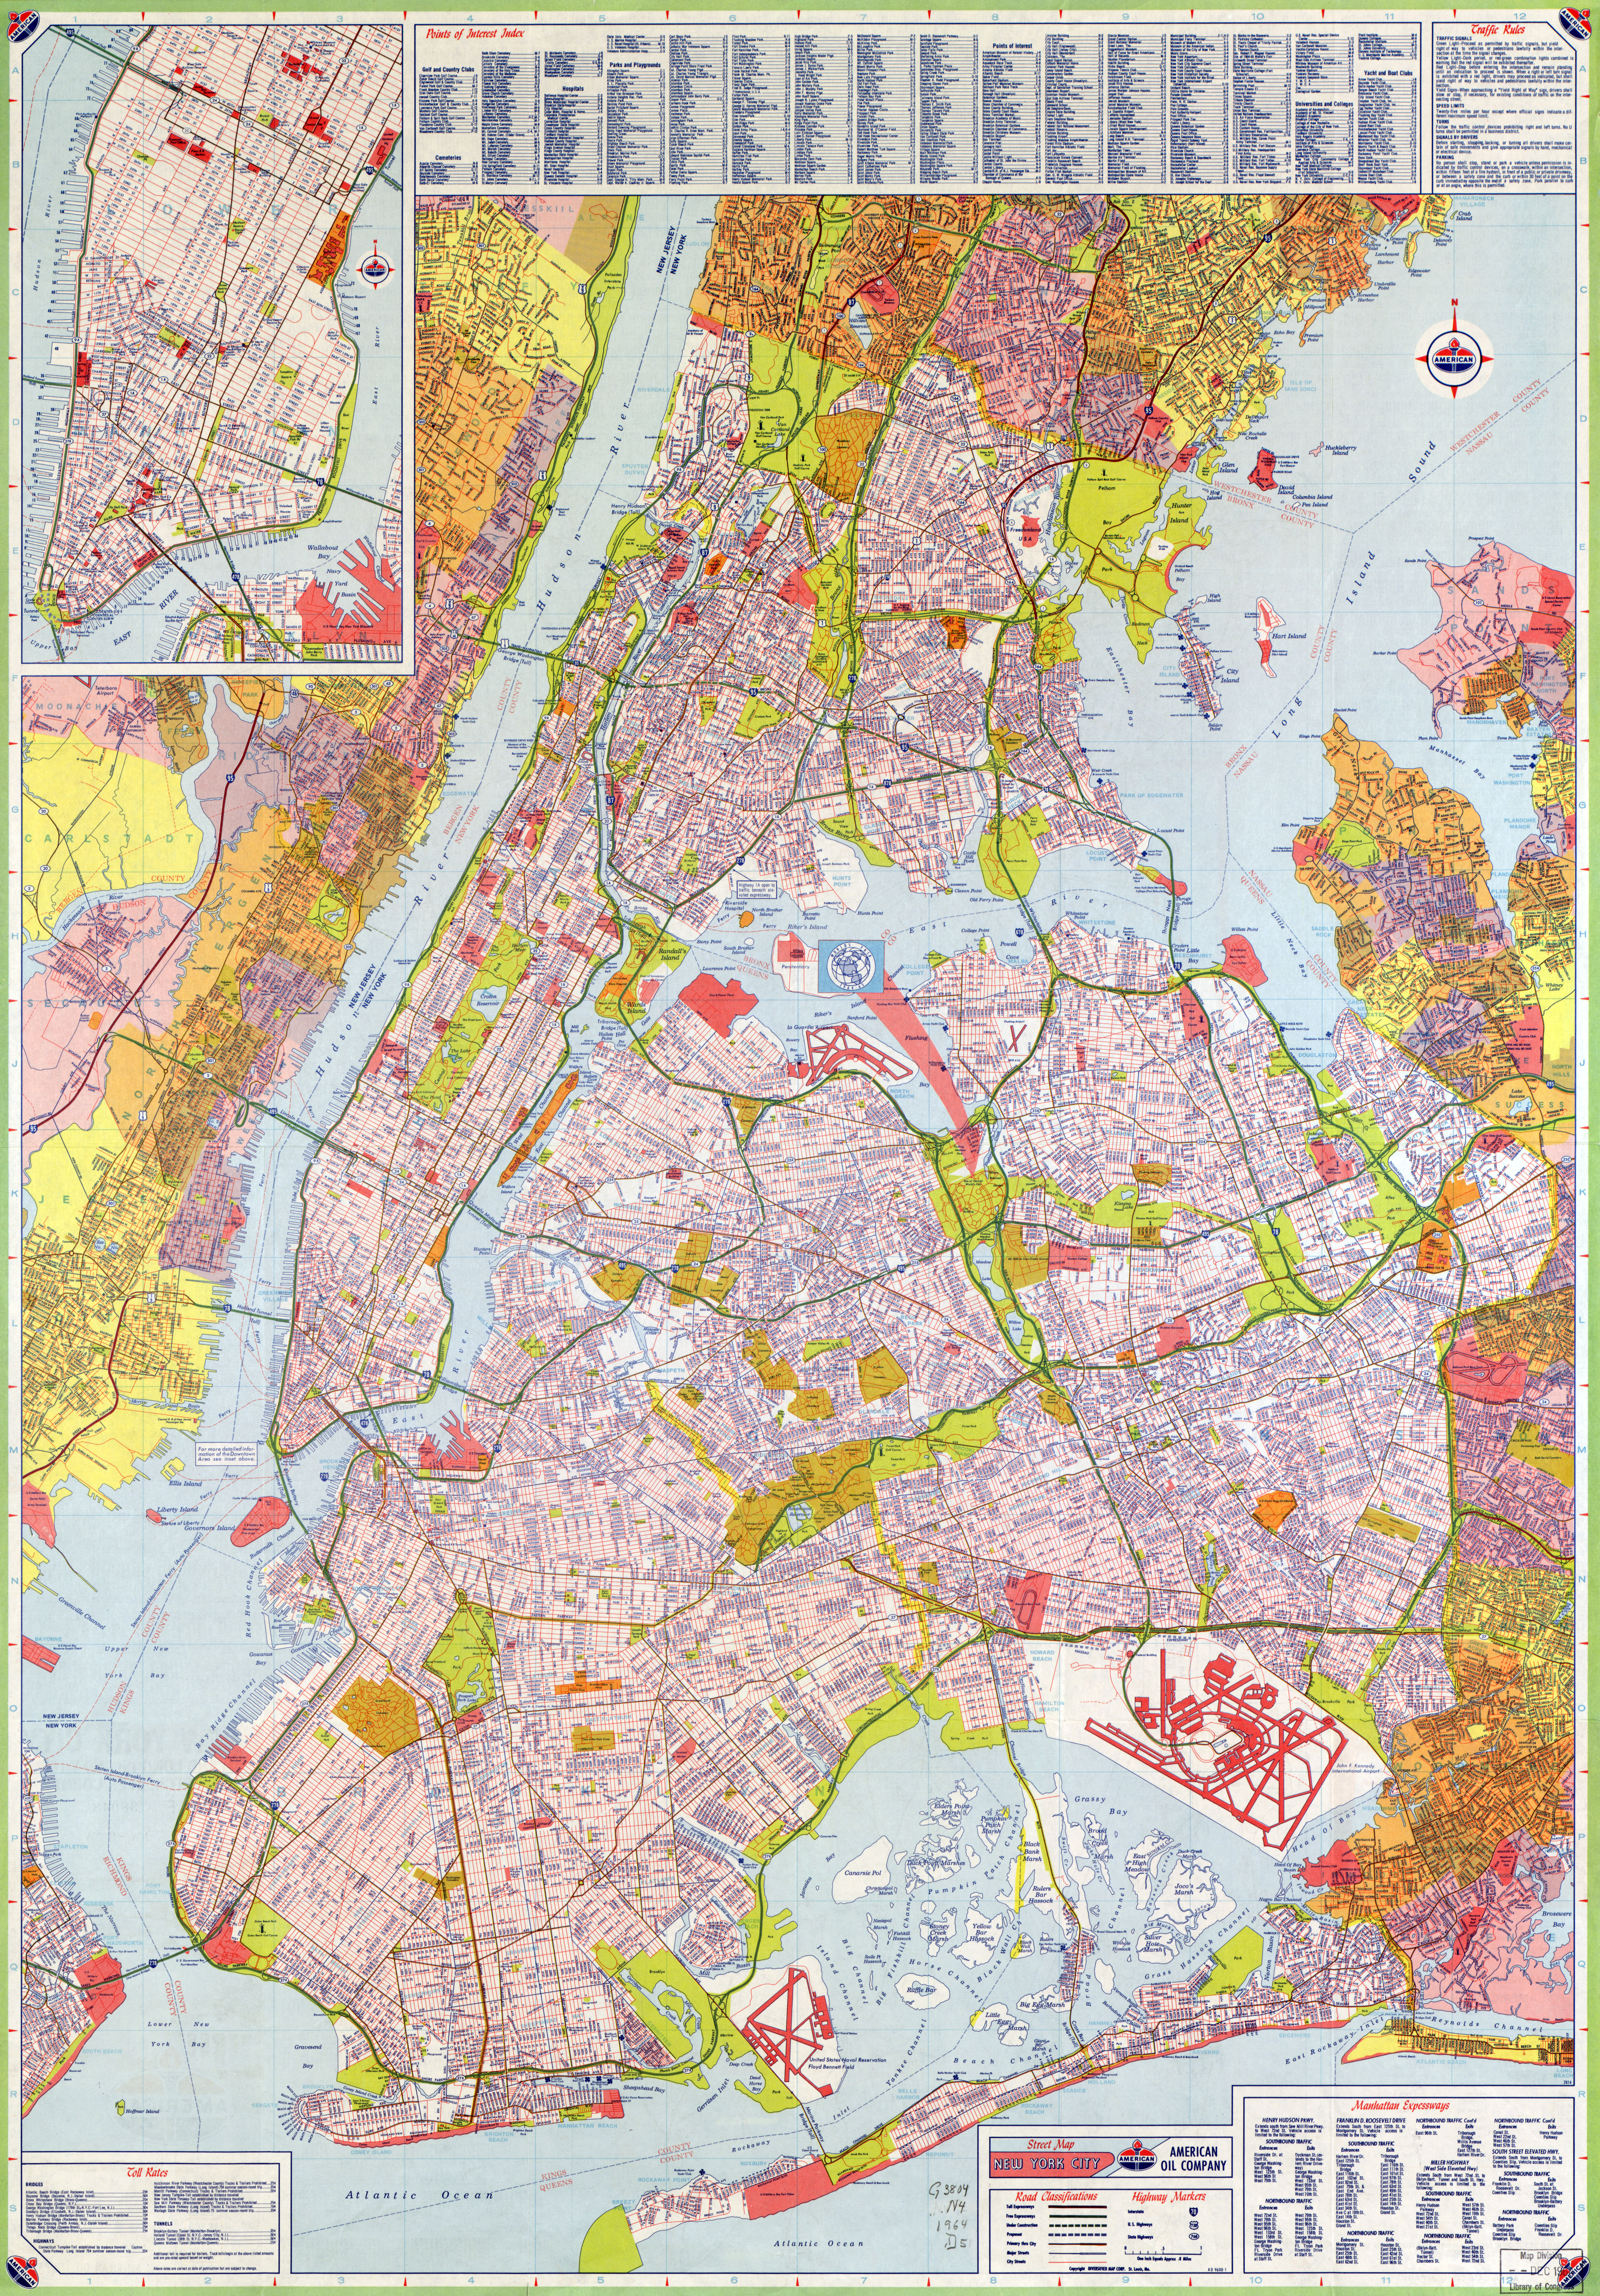 Large scale HiRes detailed full road map of New York city (USA) with on